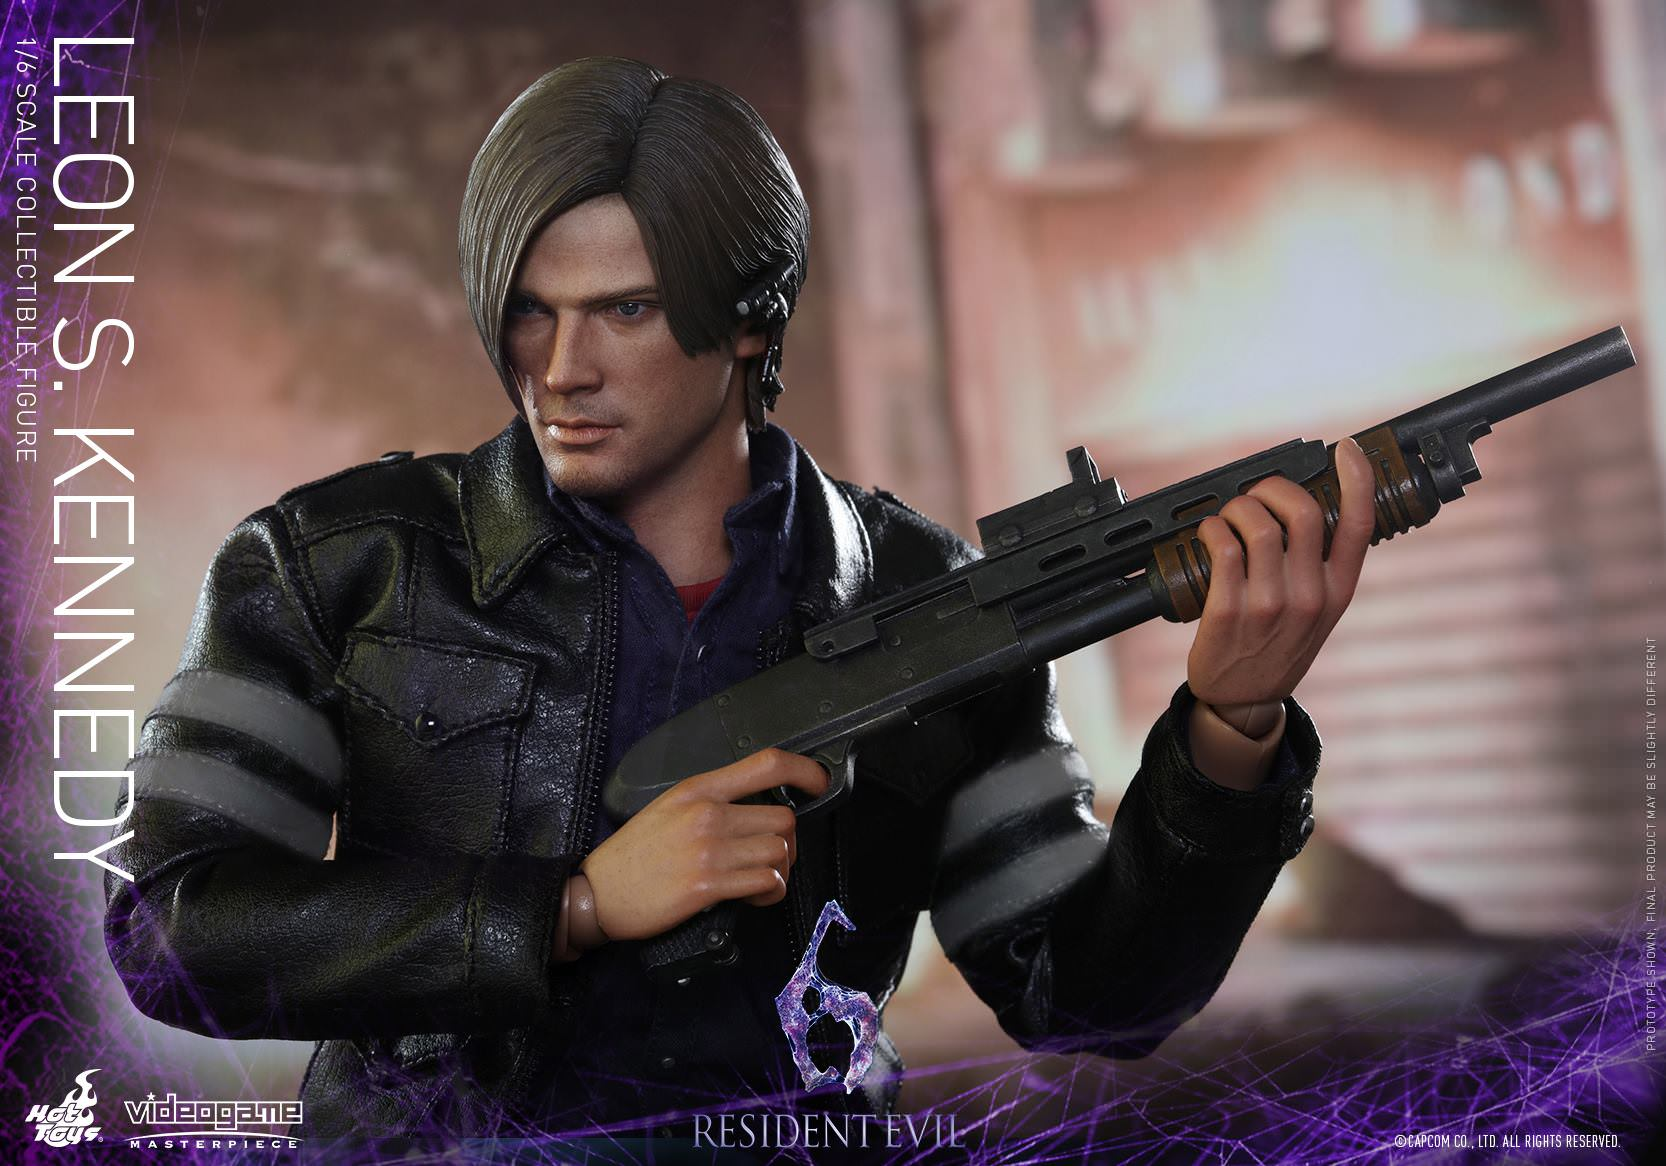 Action Figures 1 6 Scale Hot Toys Vgm22 Leon S Kennedy